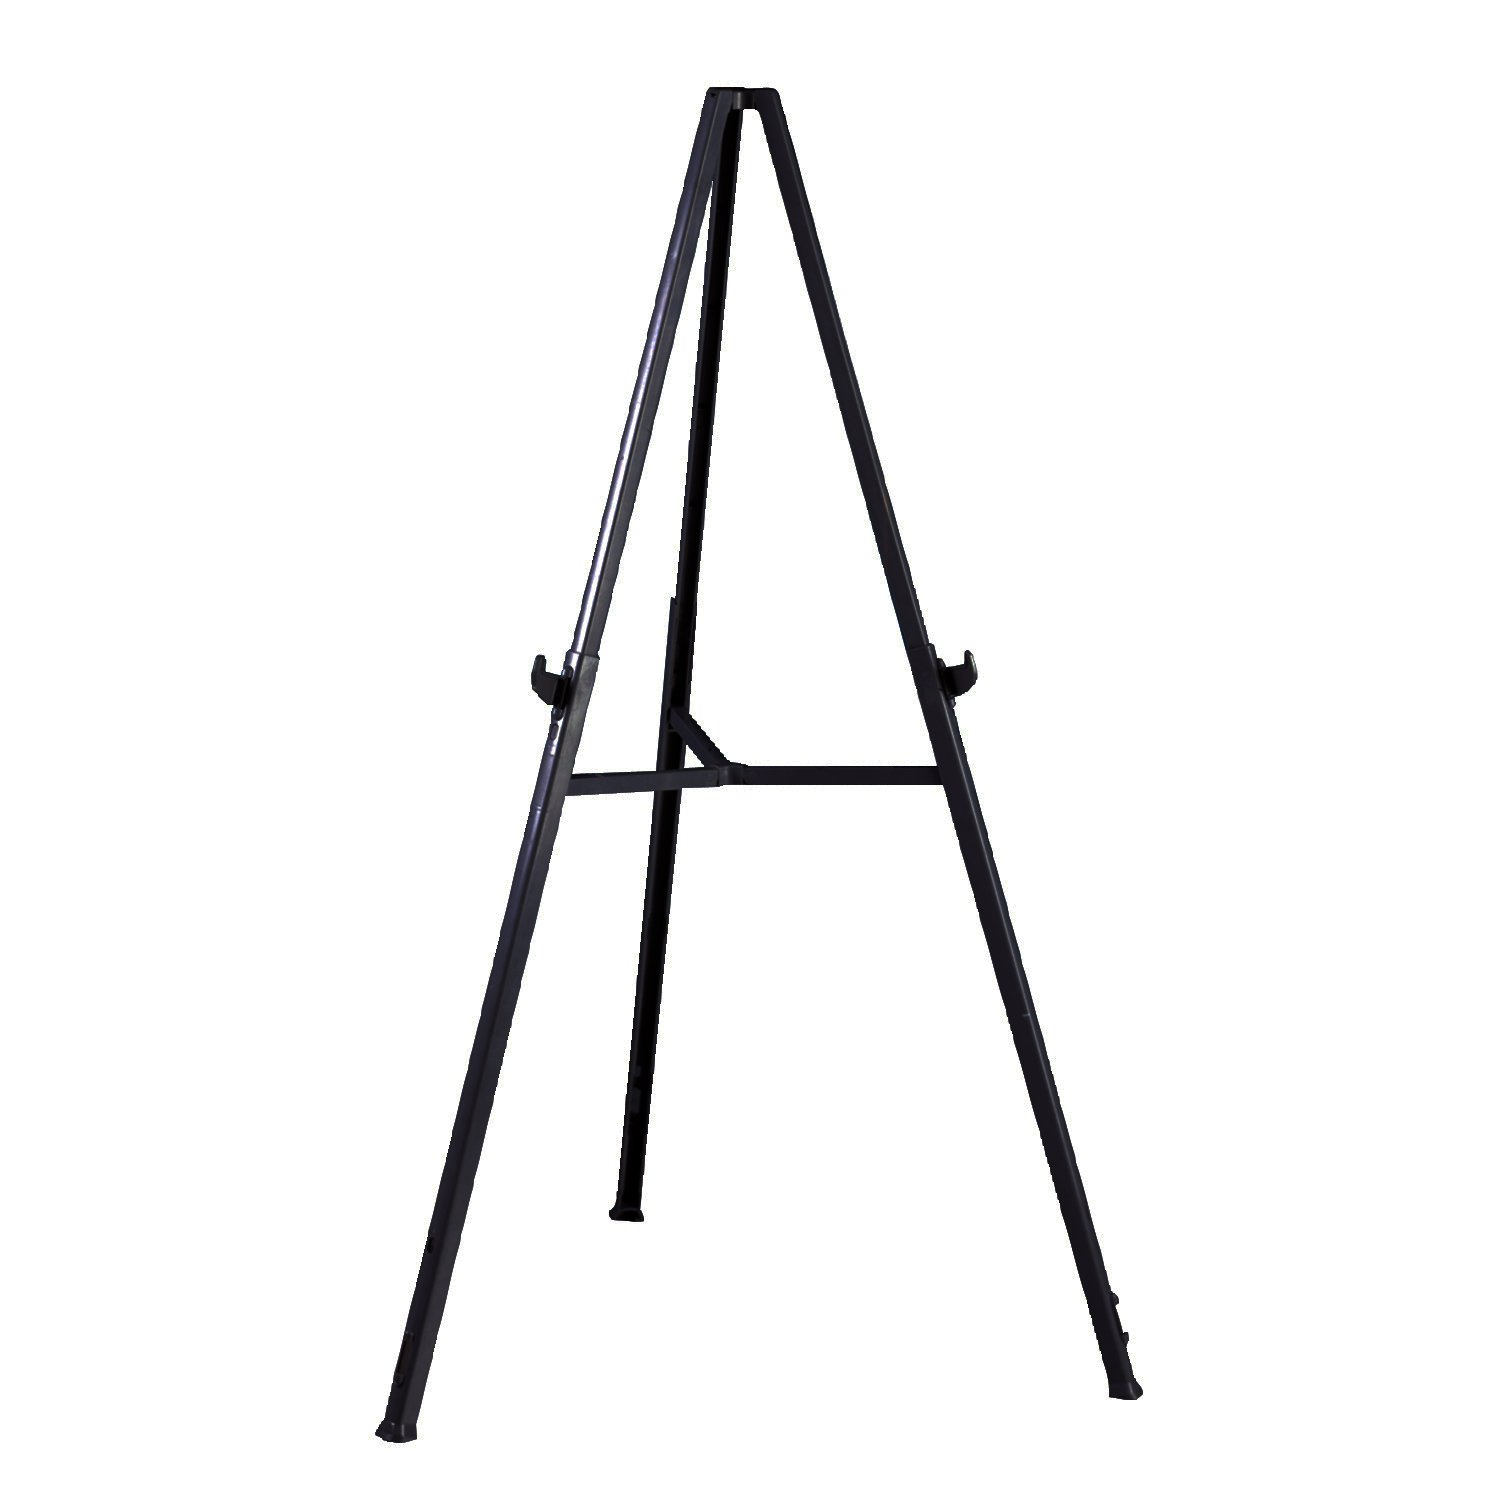 Ghent 19250 Triumph Folding Display Easel- 37''- 62'' adjustable hieght for table top/floor by Ghent